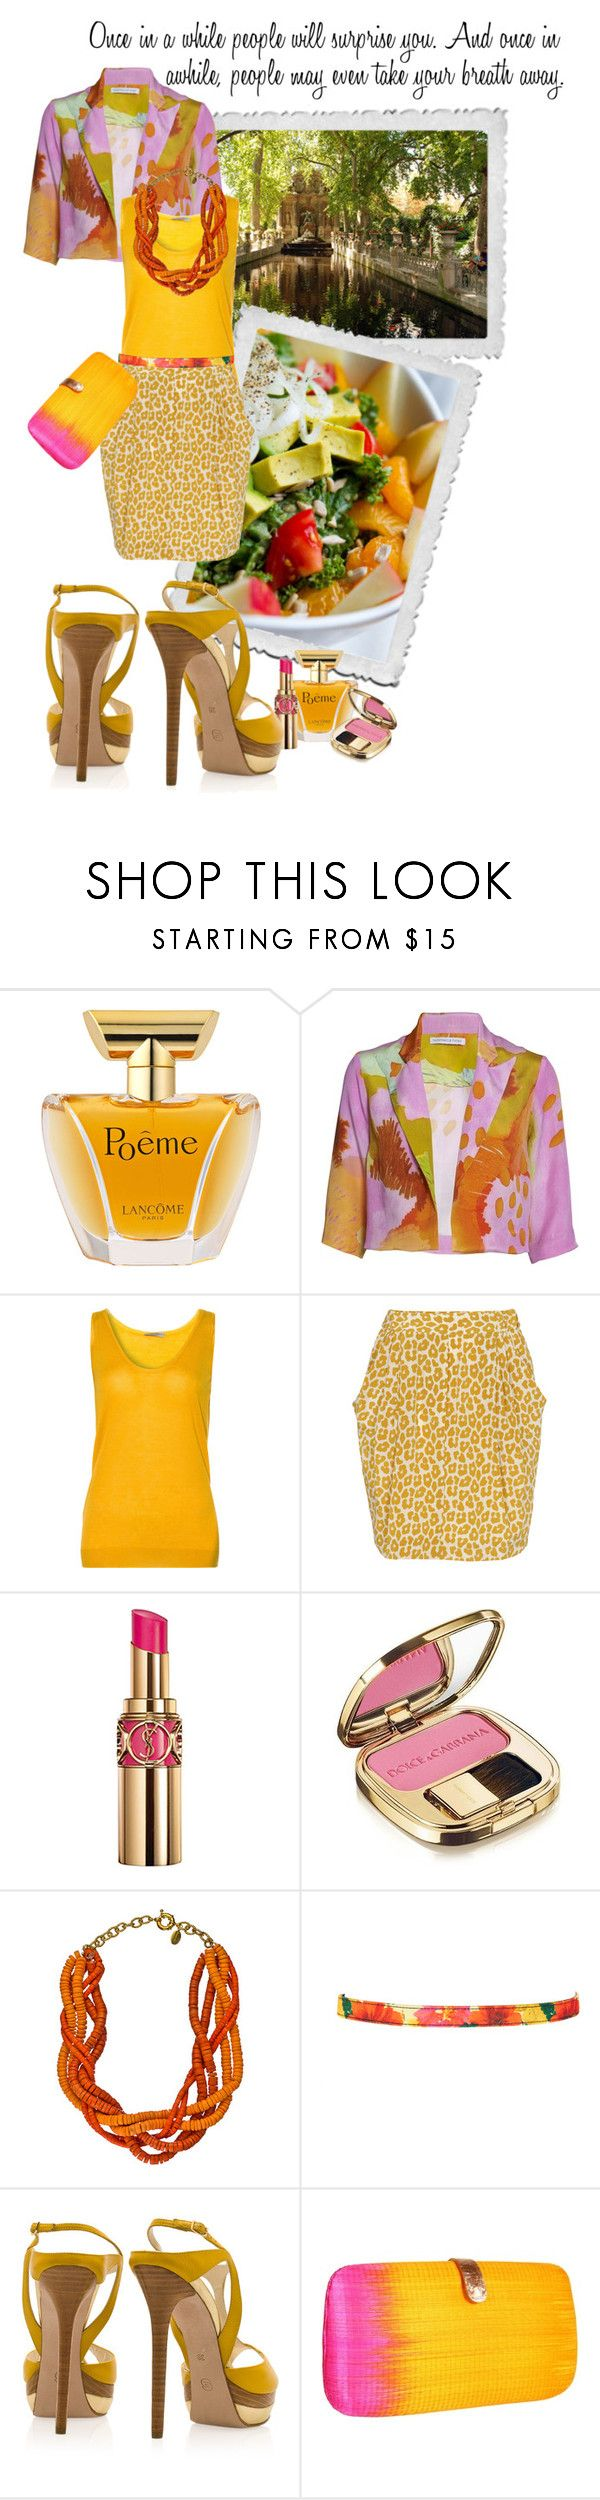 """""""WAITING FOR THE MIRACLE"""" by paint-it-black ❤ liked on Polyvore featuring Lancôme, Tabernacle Twins, Bottega Veneta, 3.1 Phillip Lim, Yves Saint Laurent, Dolce&Gabbana, Amanda Pearl, Pieces, Elie Saab and Rebecca Minkoff"""